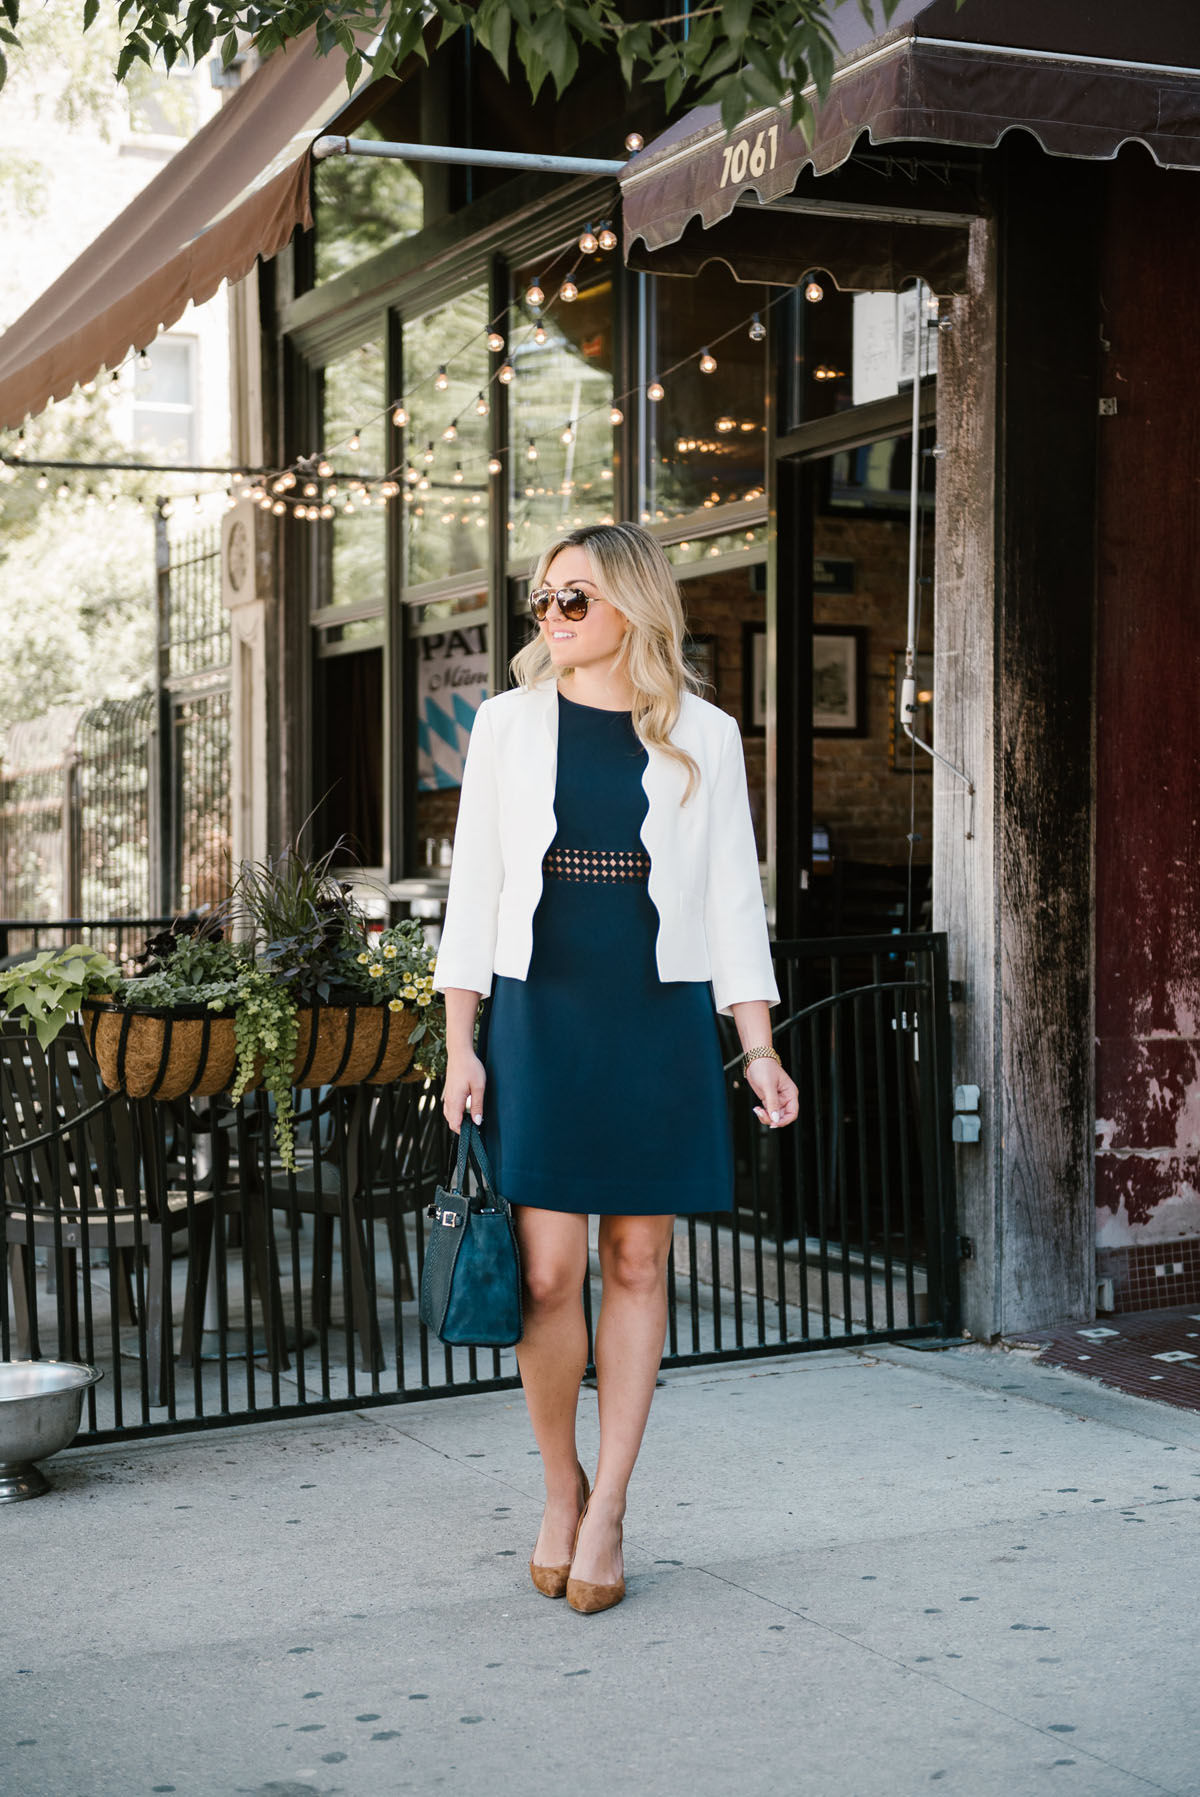 Bows & Sequins, a Chicago-based fashion blogger, wearing a Sail to Sable summer dress, Celine aviators, point-toe pumps, and a Draper James blazer for work.